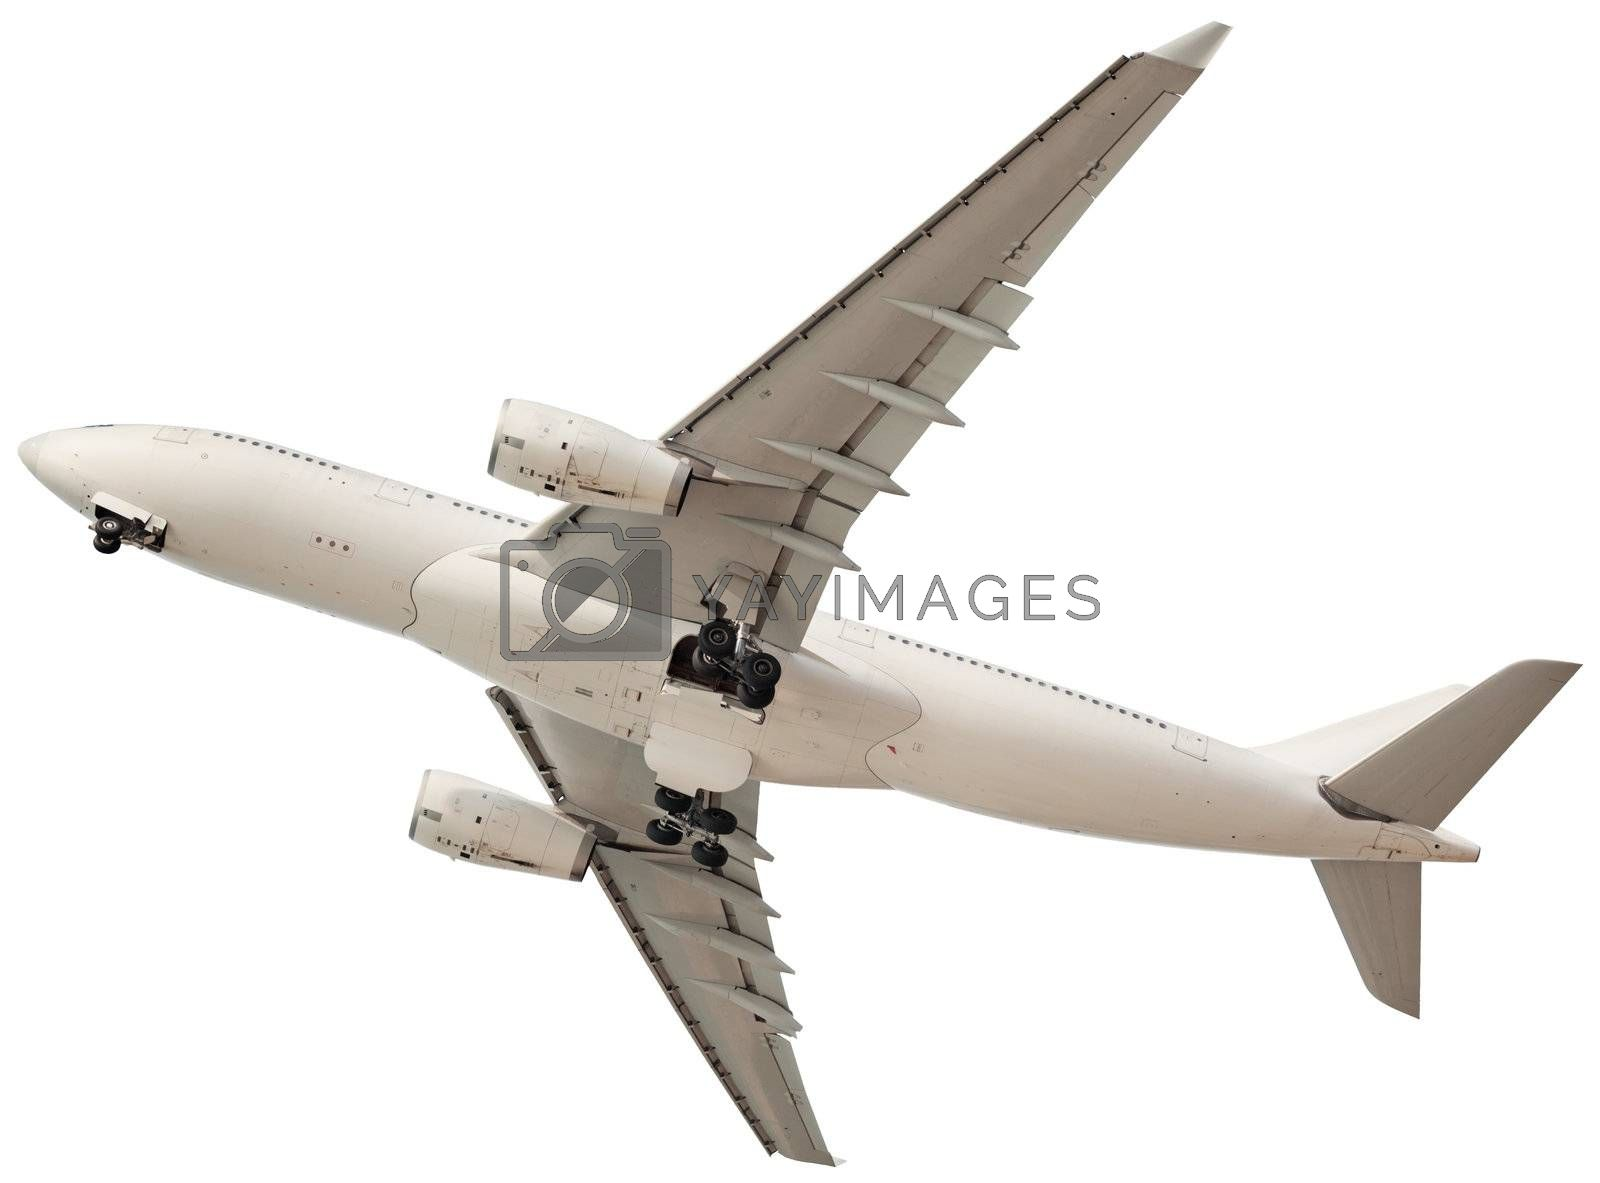 Passenger airplane isolated on a white background